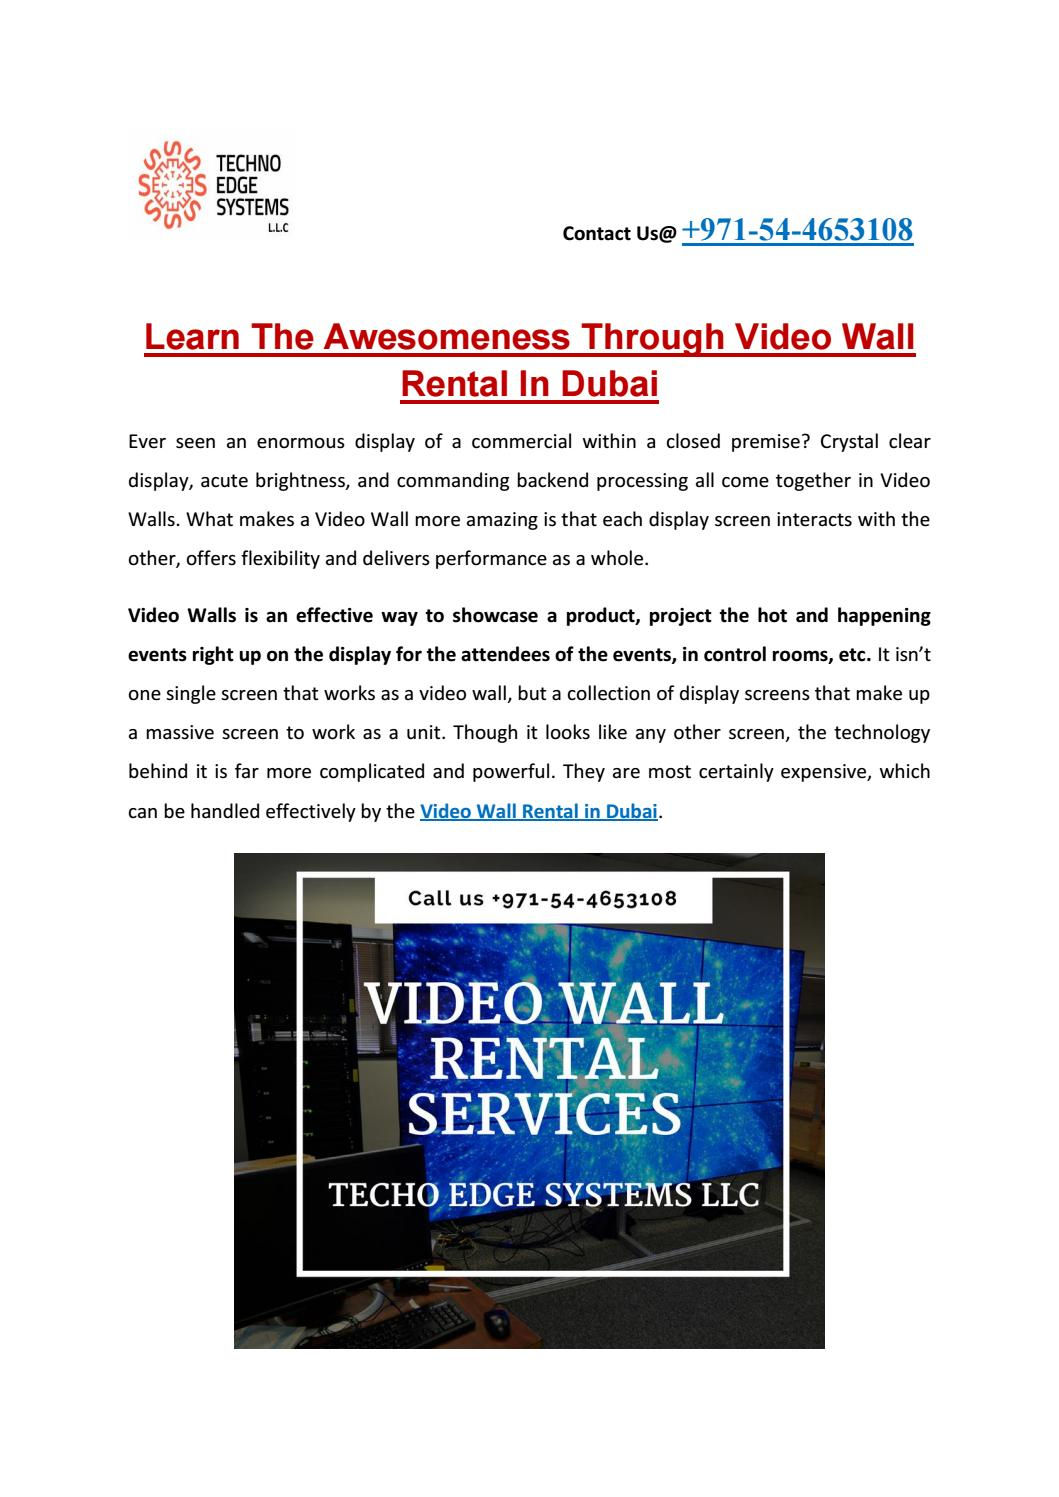 Learn The Awesomeness Through Video Wall Rental In Dubai by